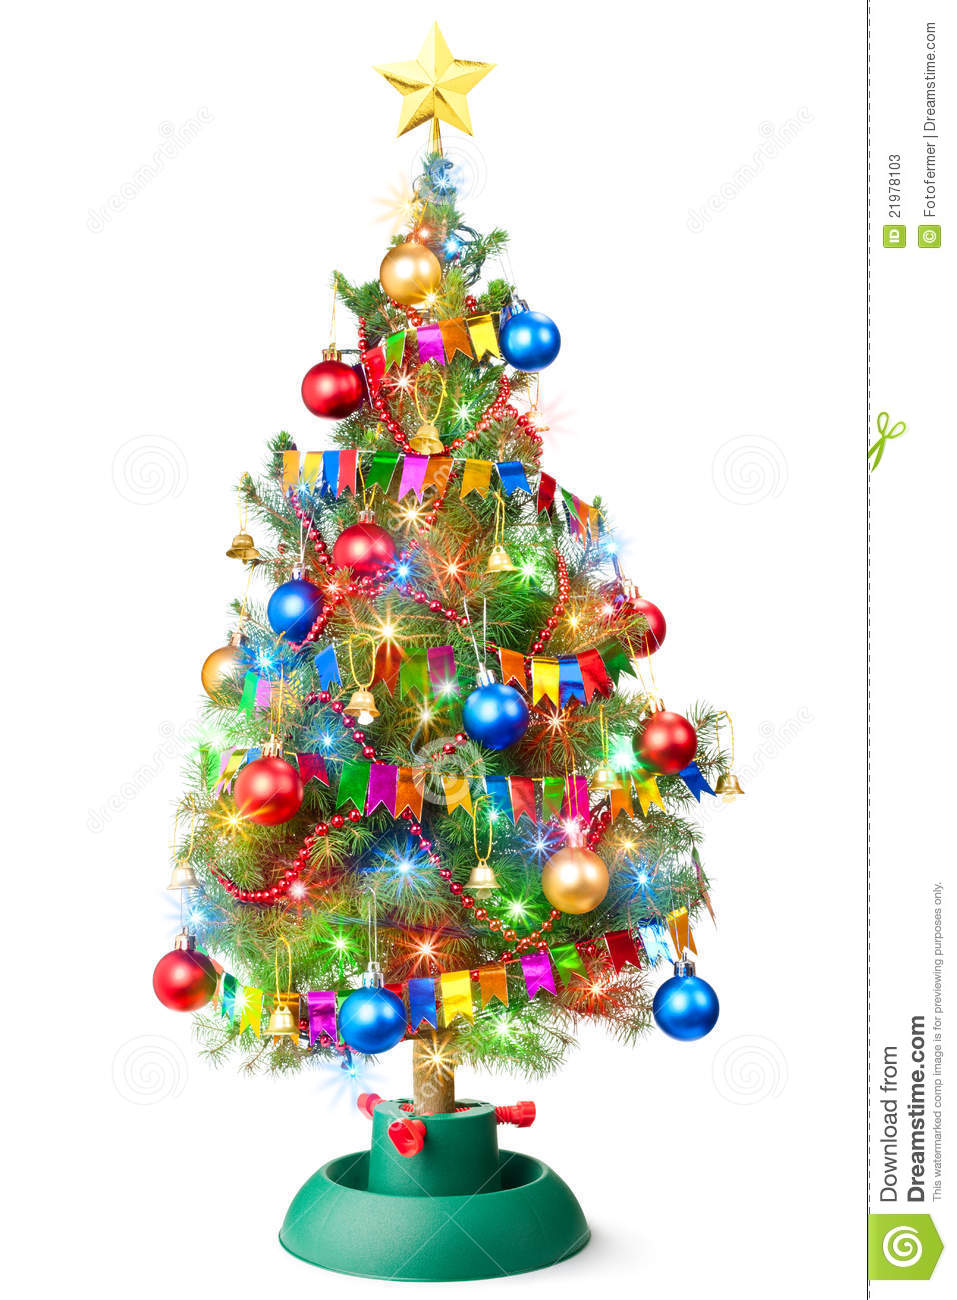 Decorate Christmas Tree Garland : Decorated christmas tree with luminous garland stock